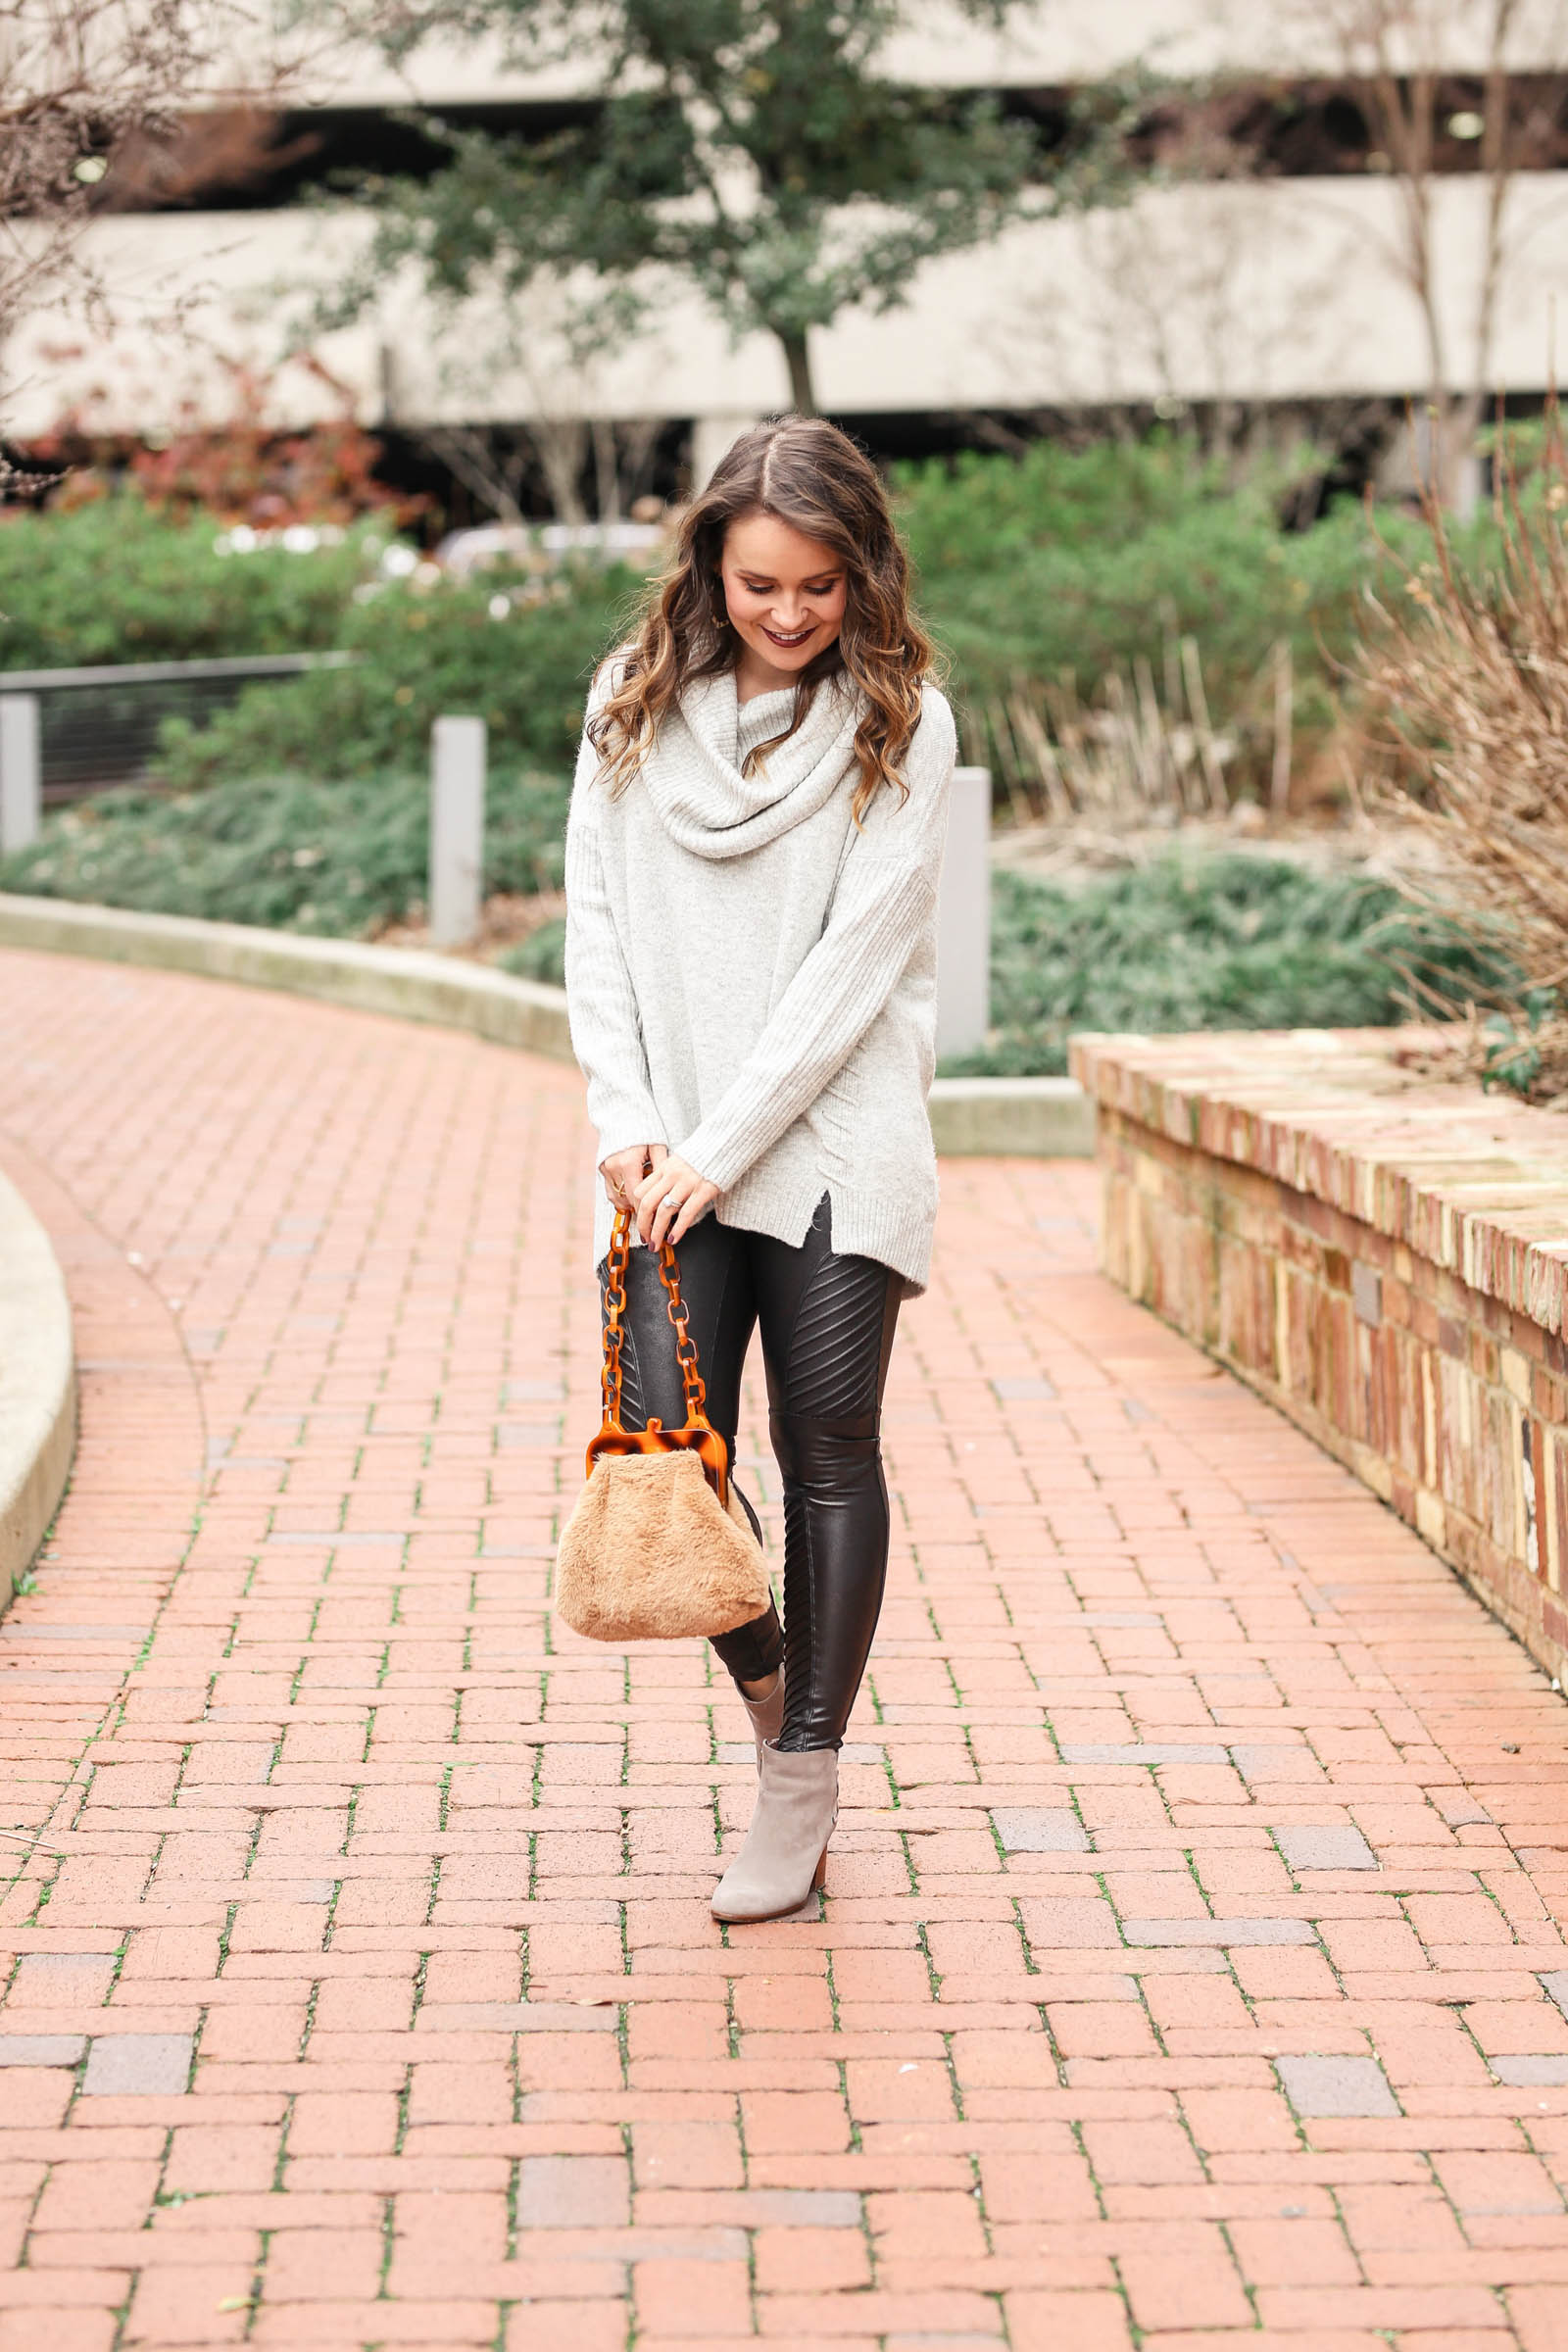 Spanx moto leggings, casual winter outfit